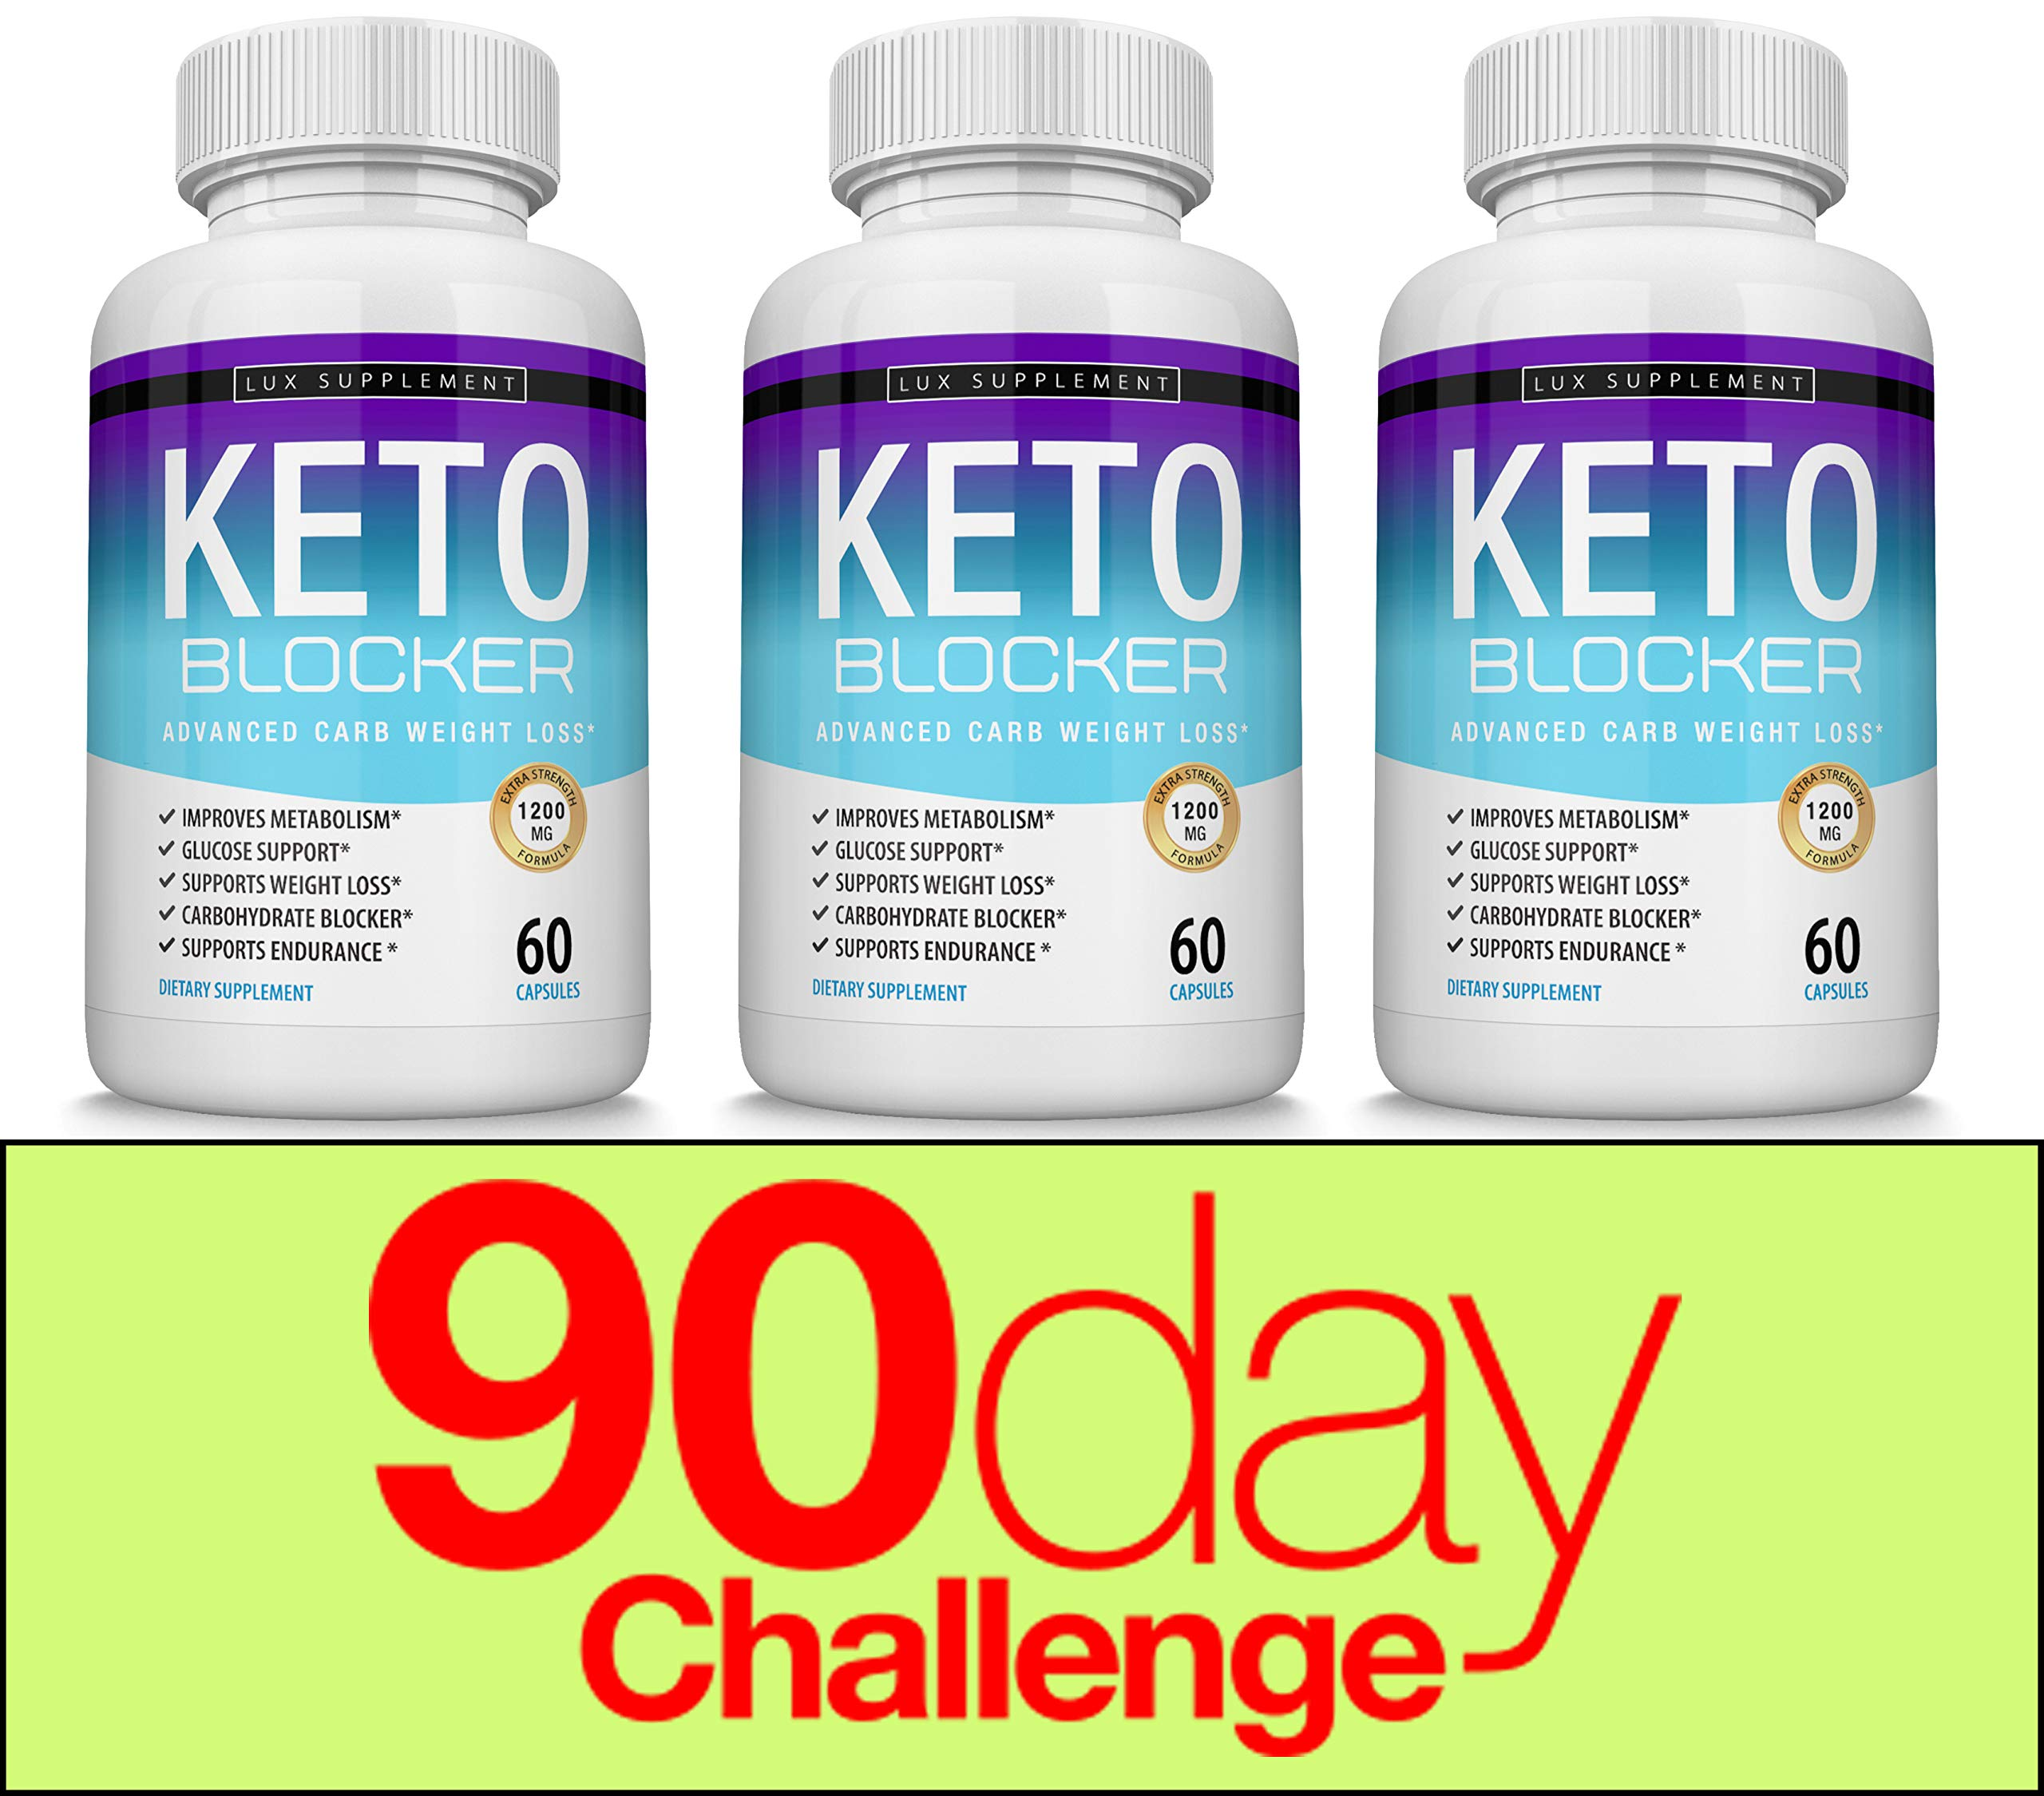 Keto Blocker Pills Advanced Carb Weight Loss - 1200 mg Natural Ketosis Fat Burner for ketogenic Diet, Suppress Appetite & Cravings, Boost Metabolism, Effective Men Women, 60 Capsules, Lux Supplement by Lux Supplement